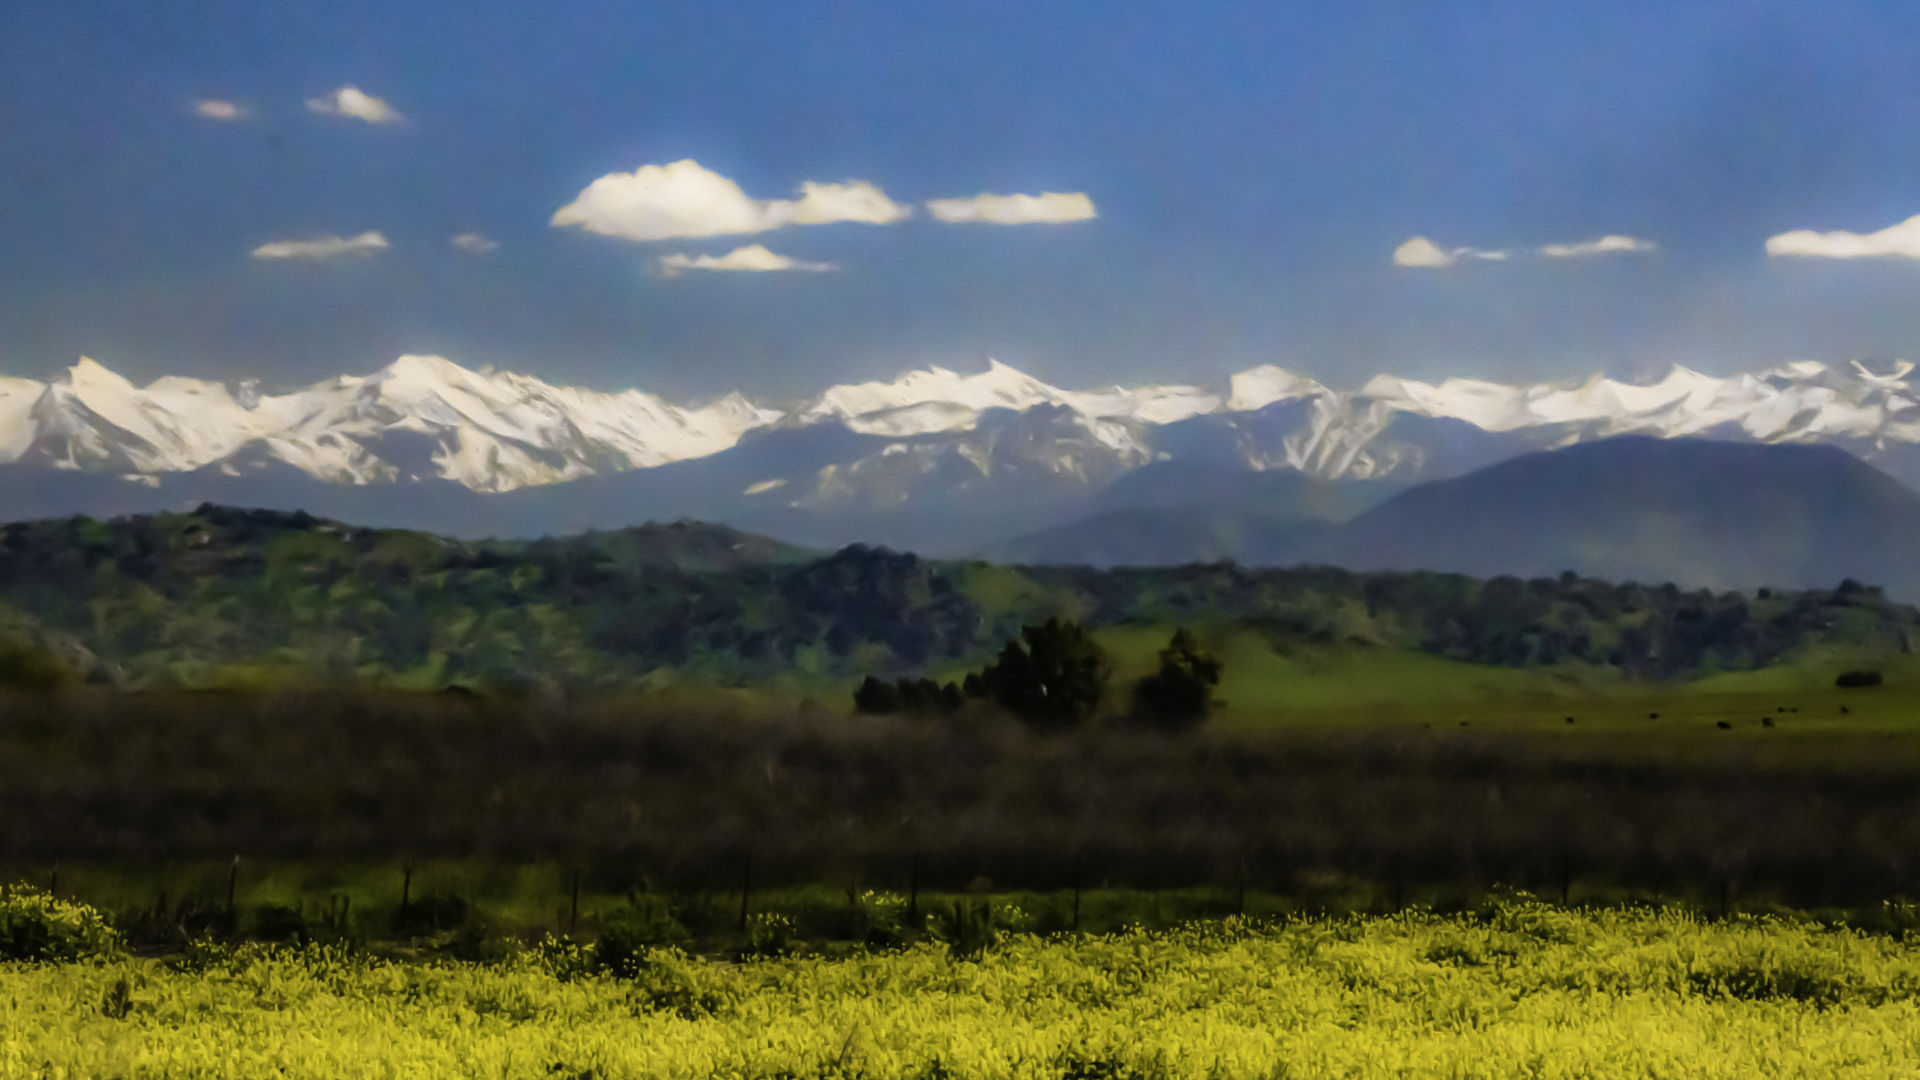 Snow Capped Sierra Nevada Mountains Over Meadow